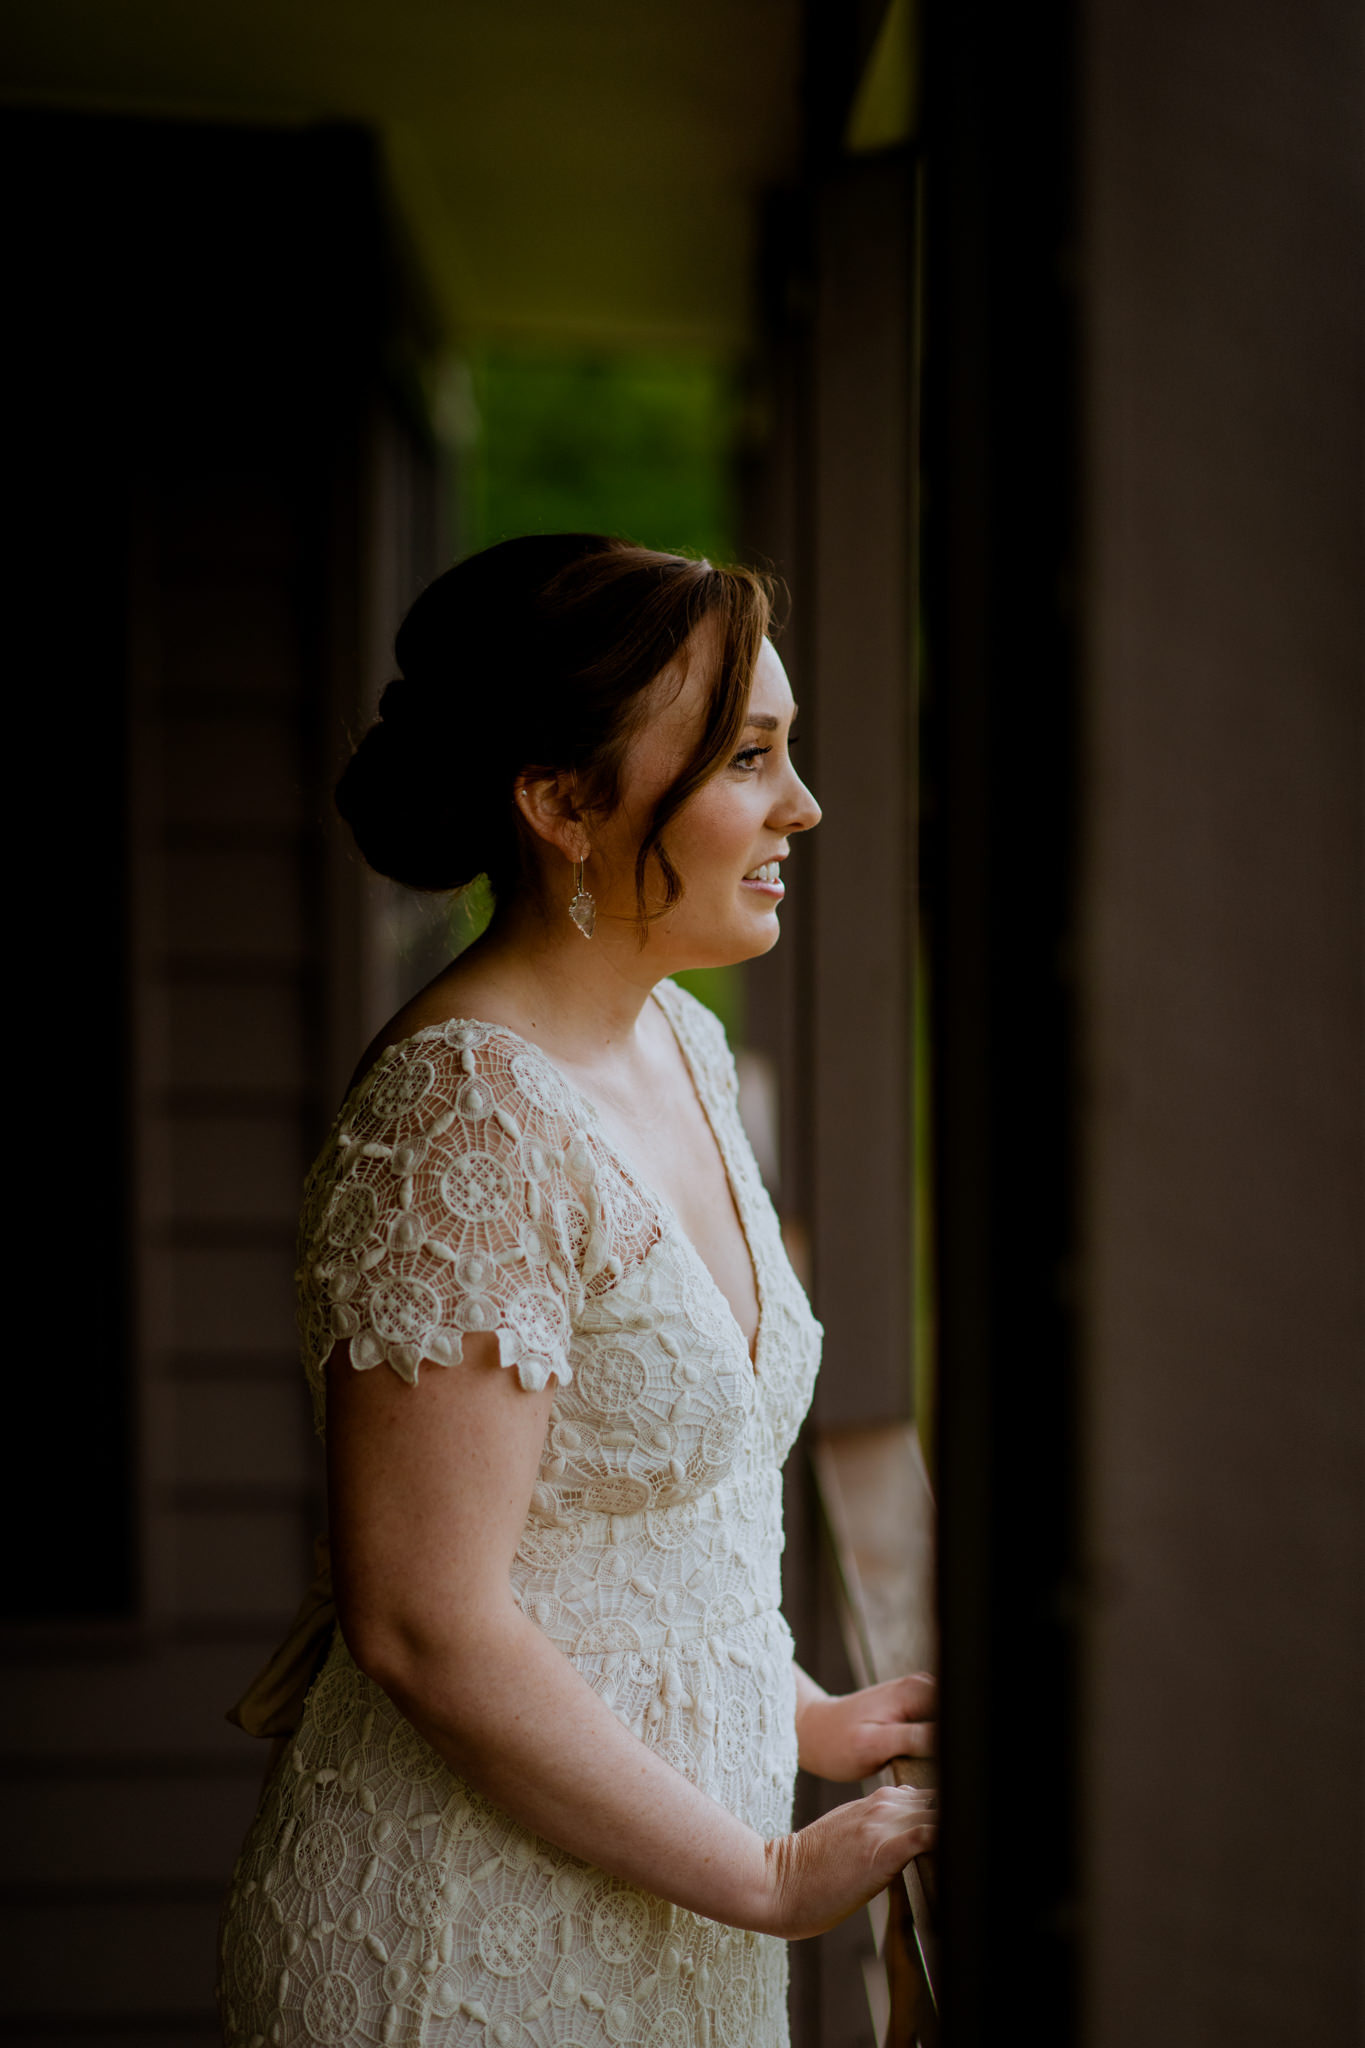 Anxious bride stands on balcony and looks right